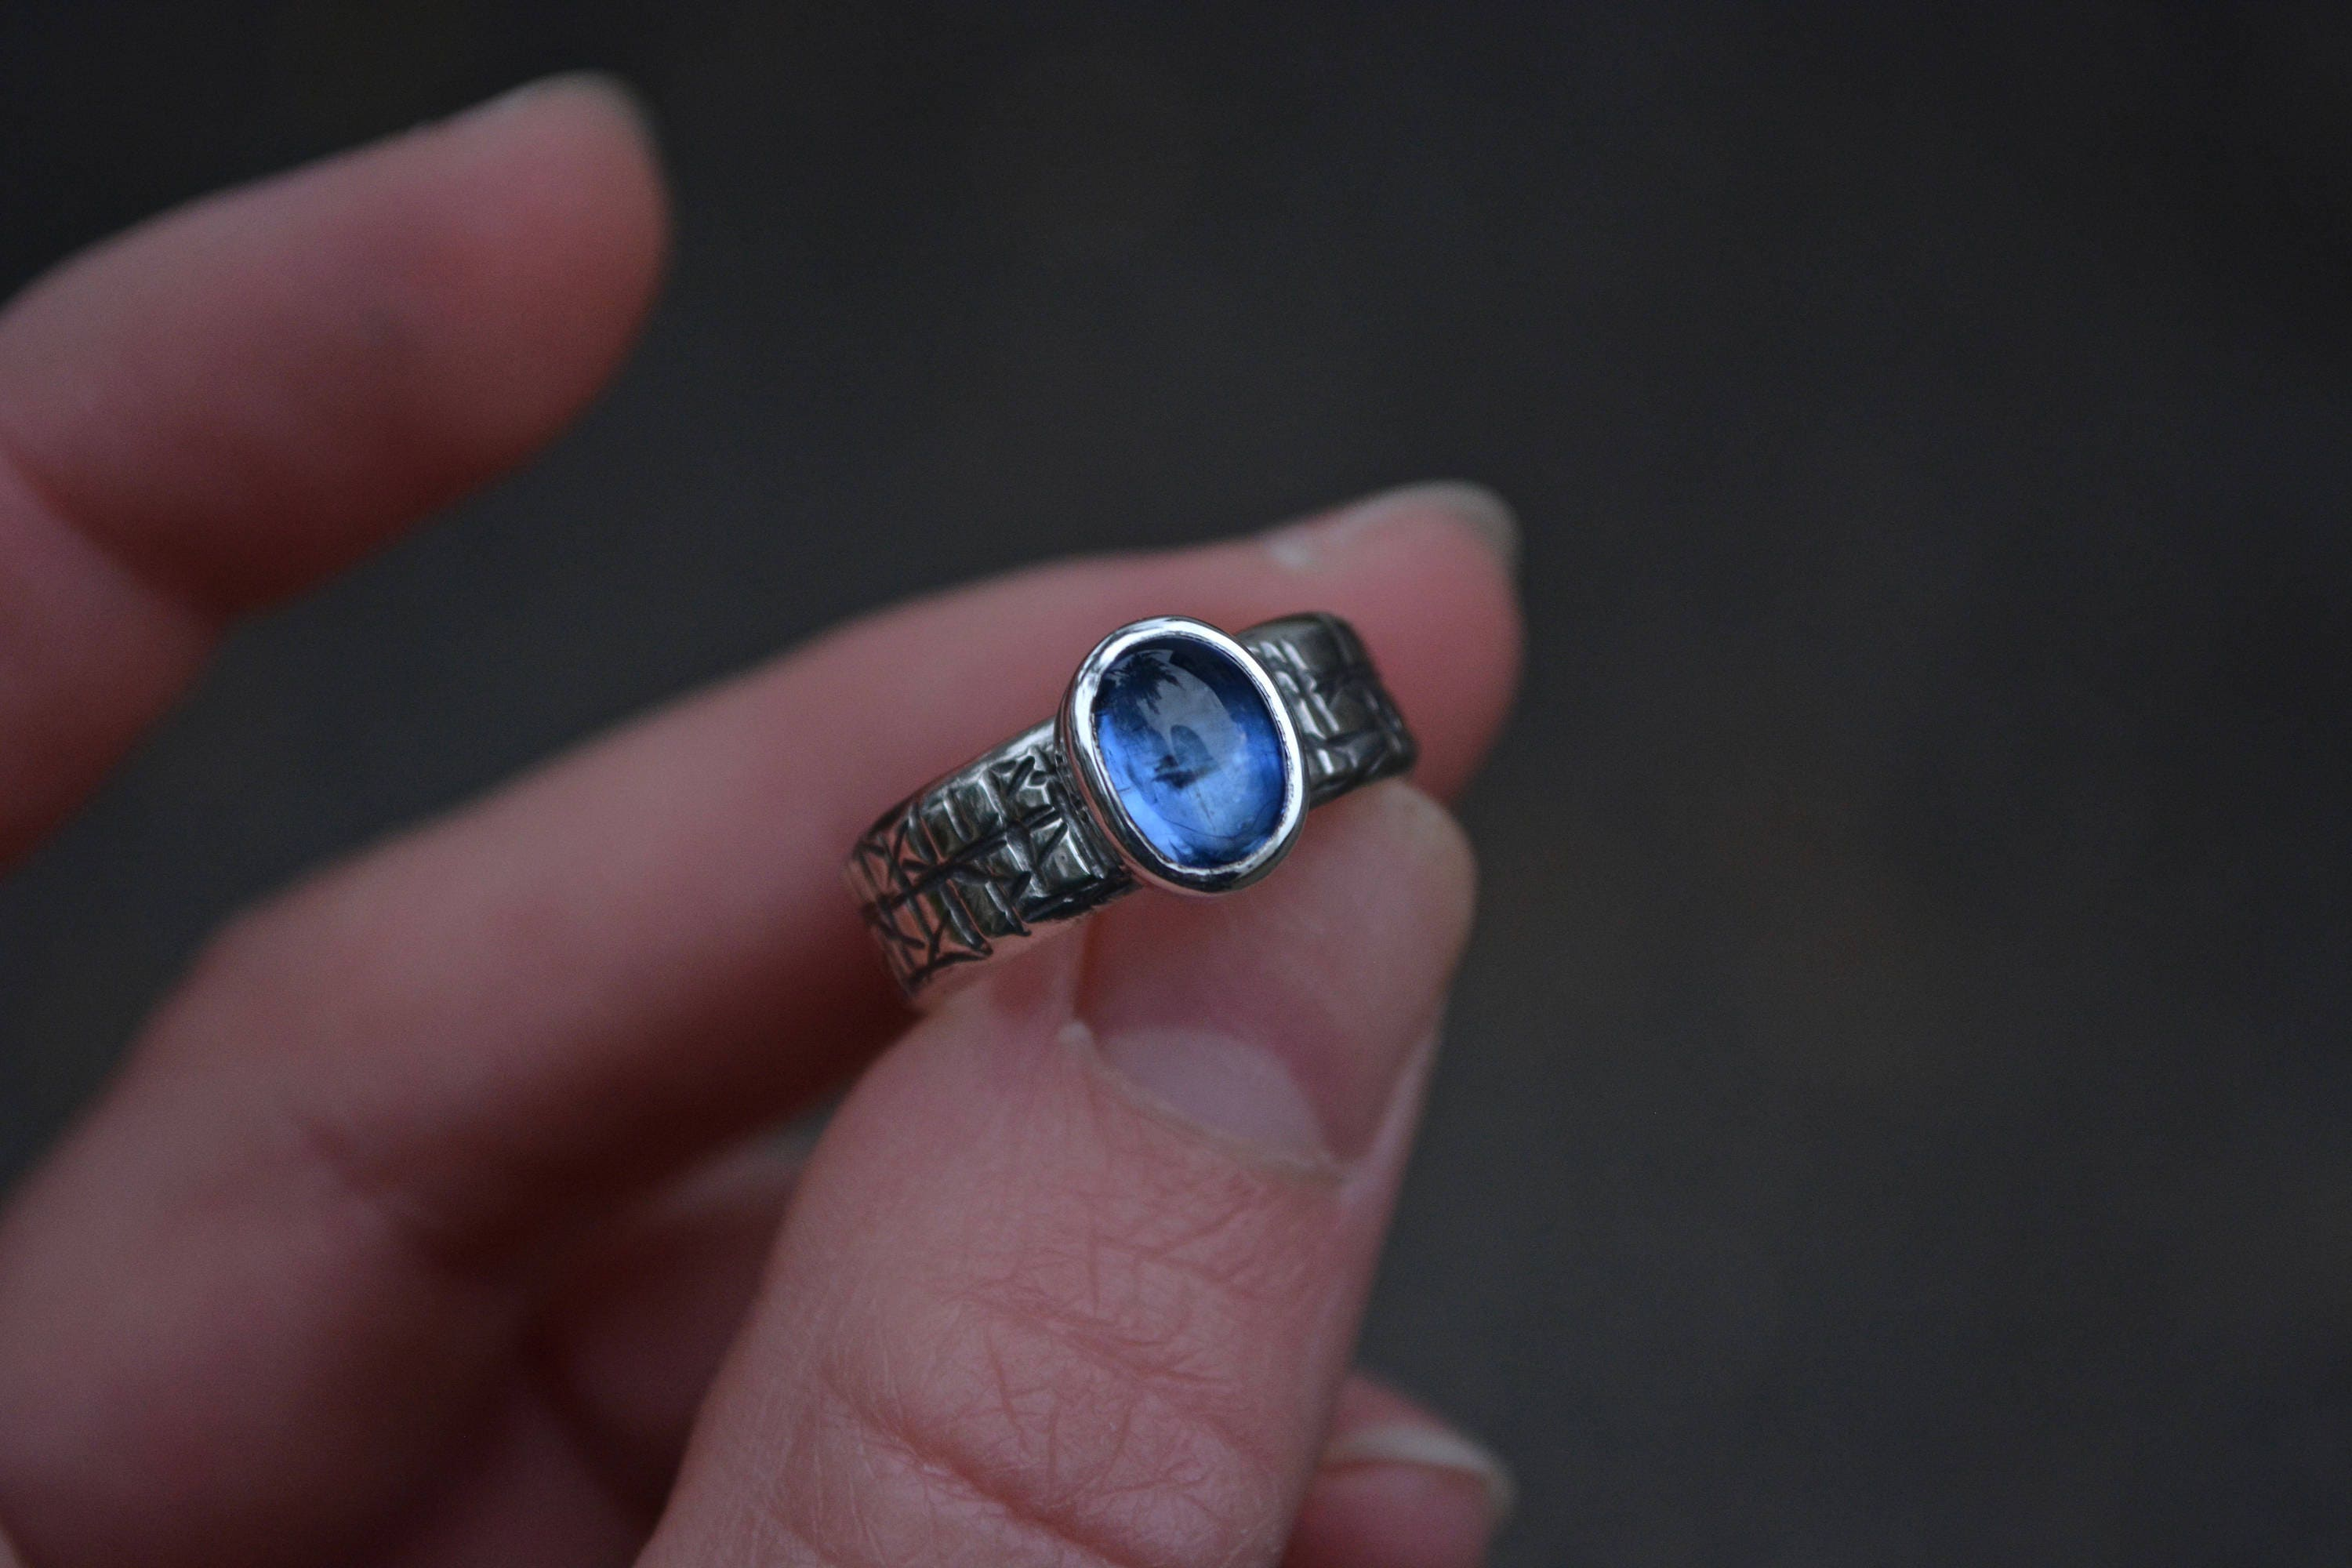 rings slabradorite blue ring product overstock palladium labradorite michael shipping today free mens valitutti and sapphire menslabradorite silver or kyanite jewelry watches men